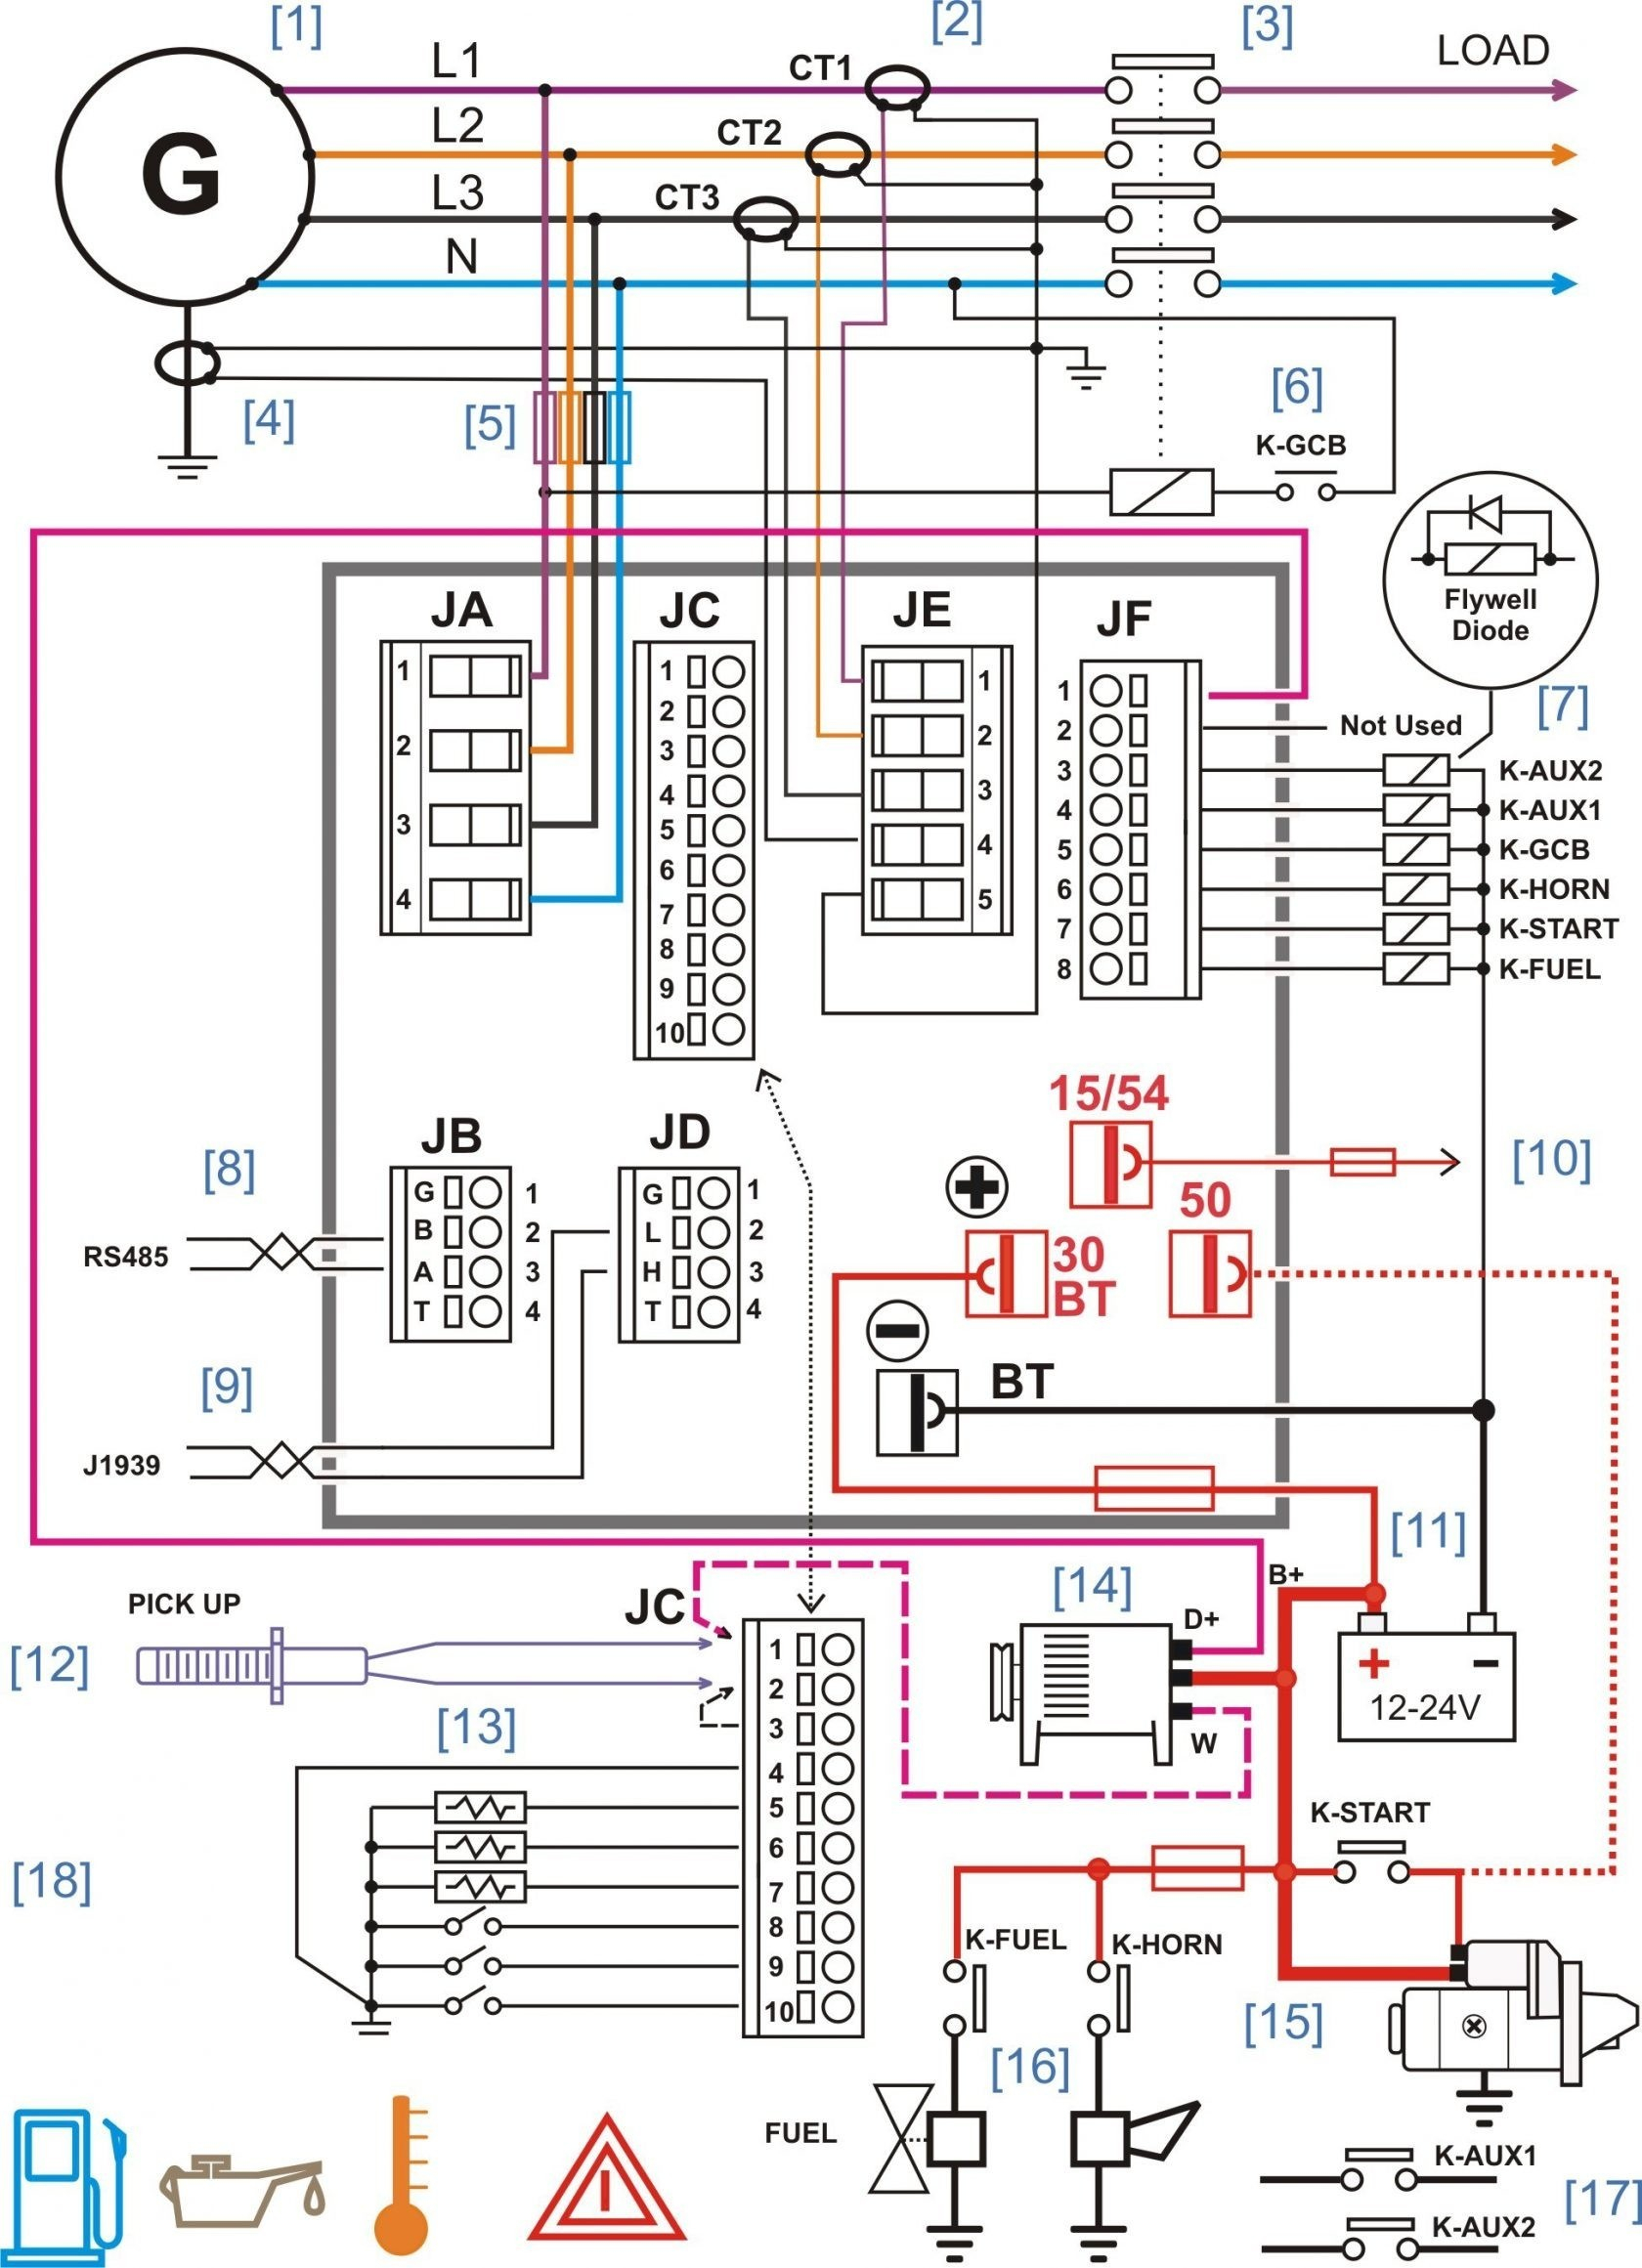 workhorse p32 wiring diagram belling double oven rv park diagrams solar gallery sample